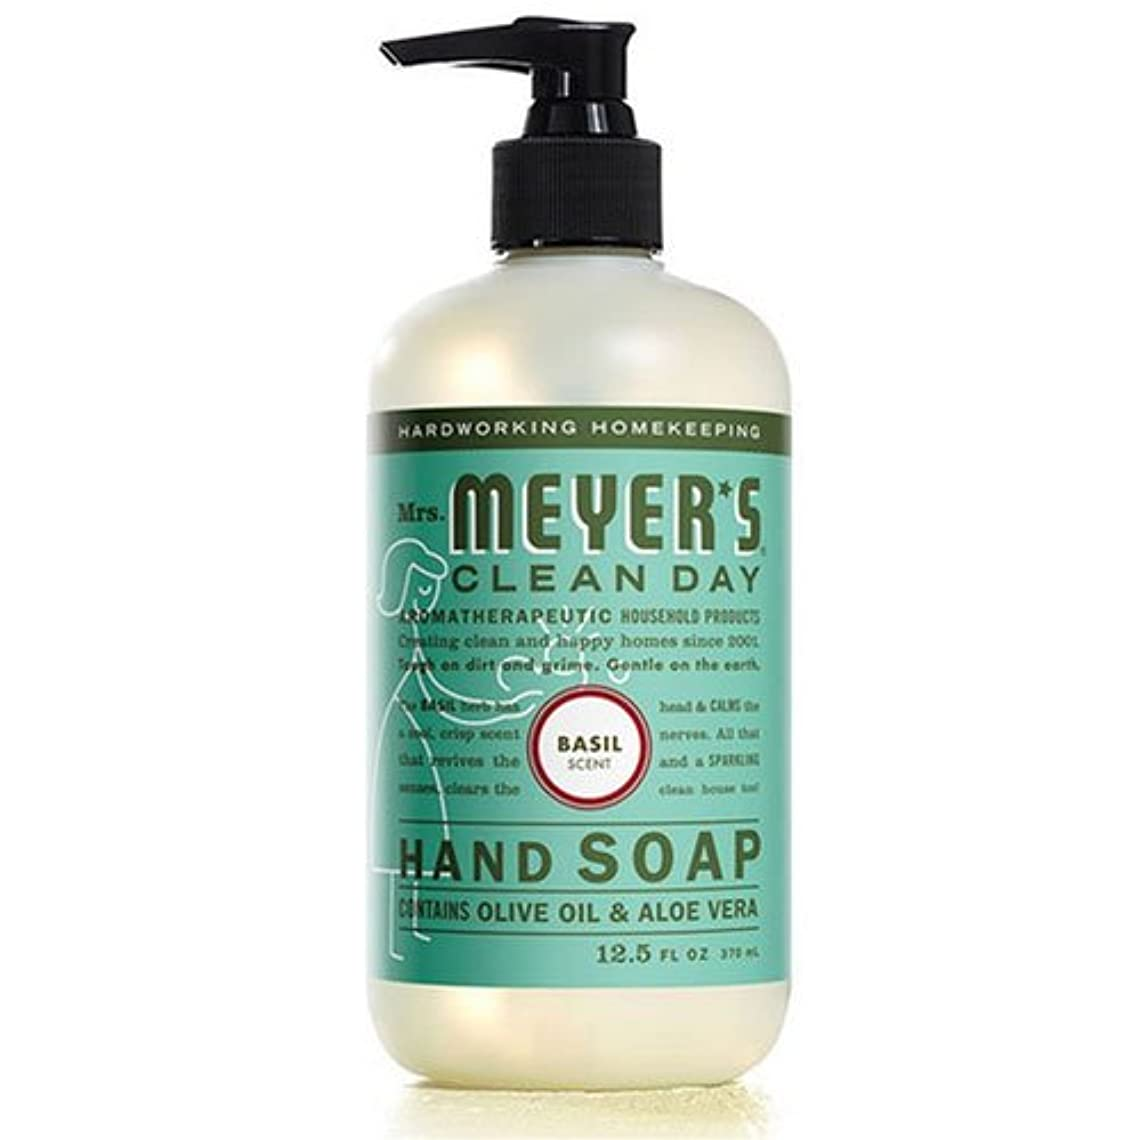 不名誉な注入する誰Mrs. Meyers's Hand Soap, Liq, Basil, 12.5 FZ by Mrs. Meyers